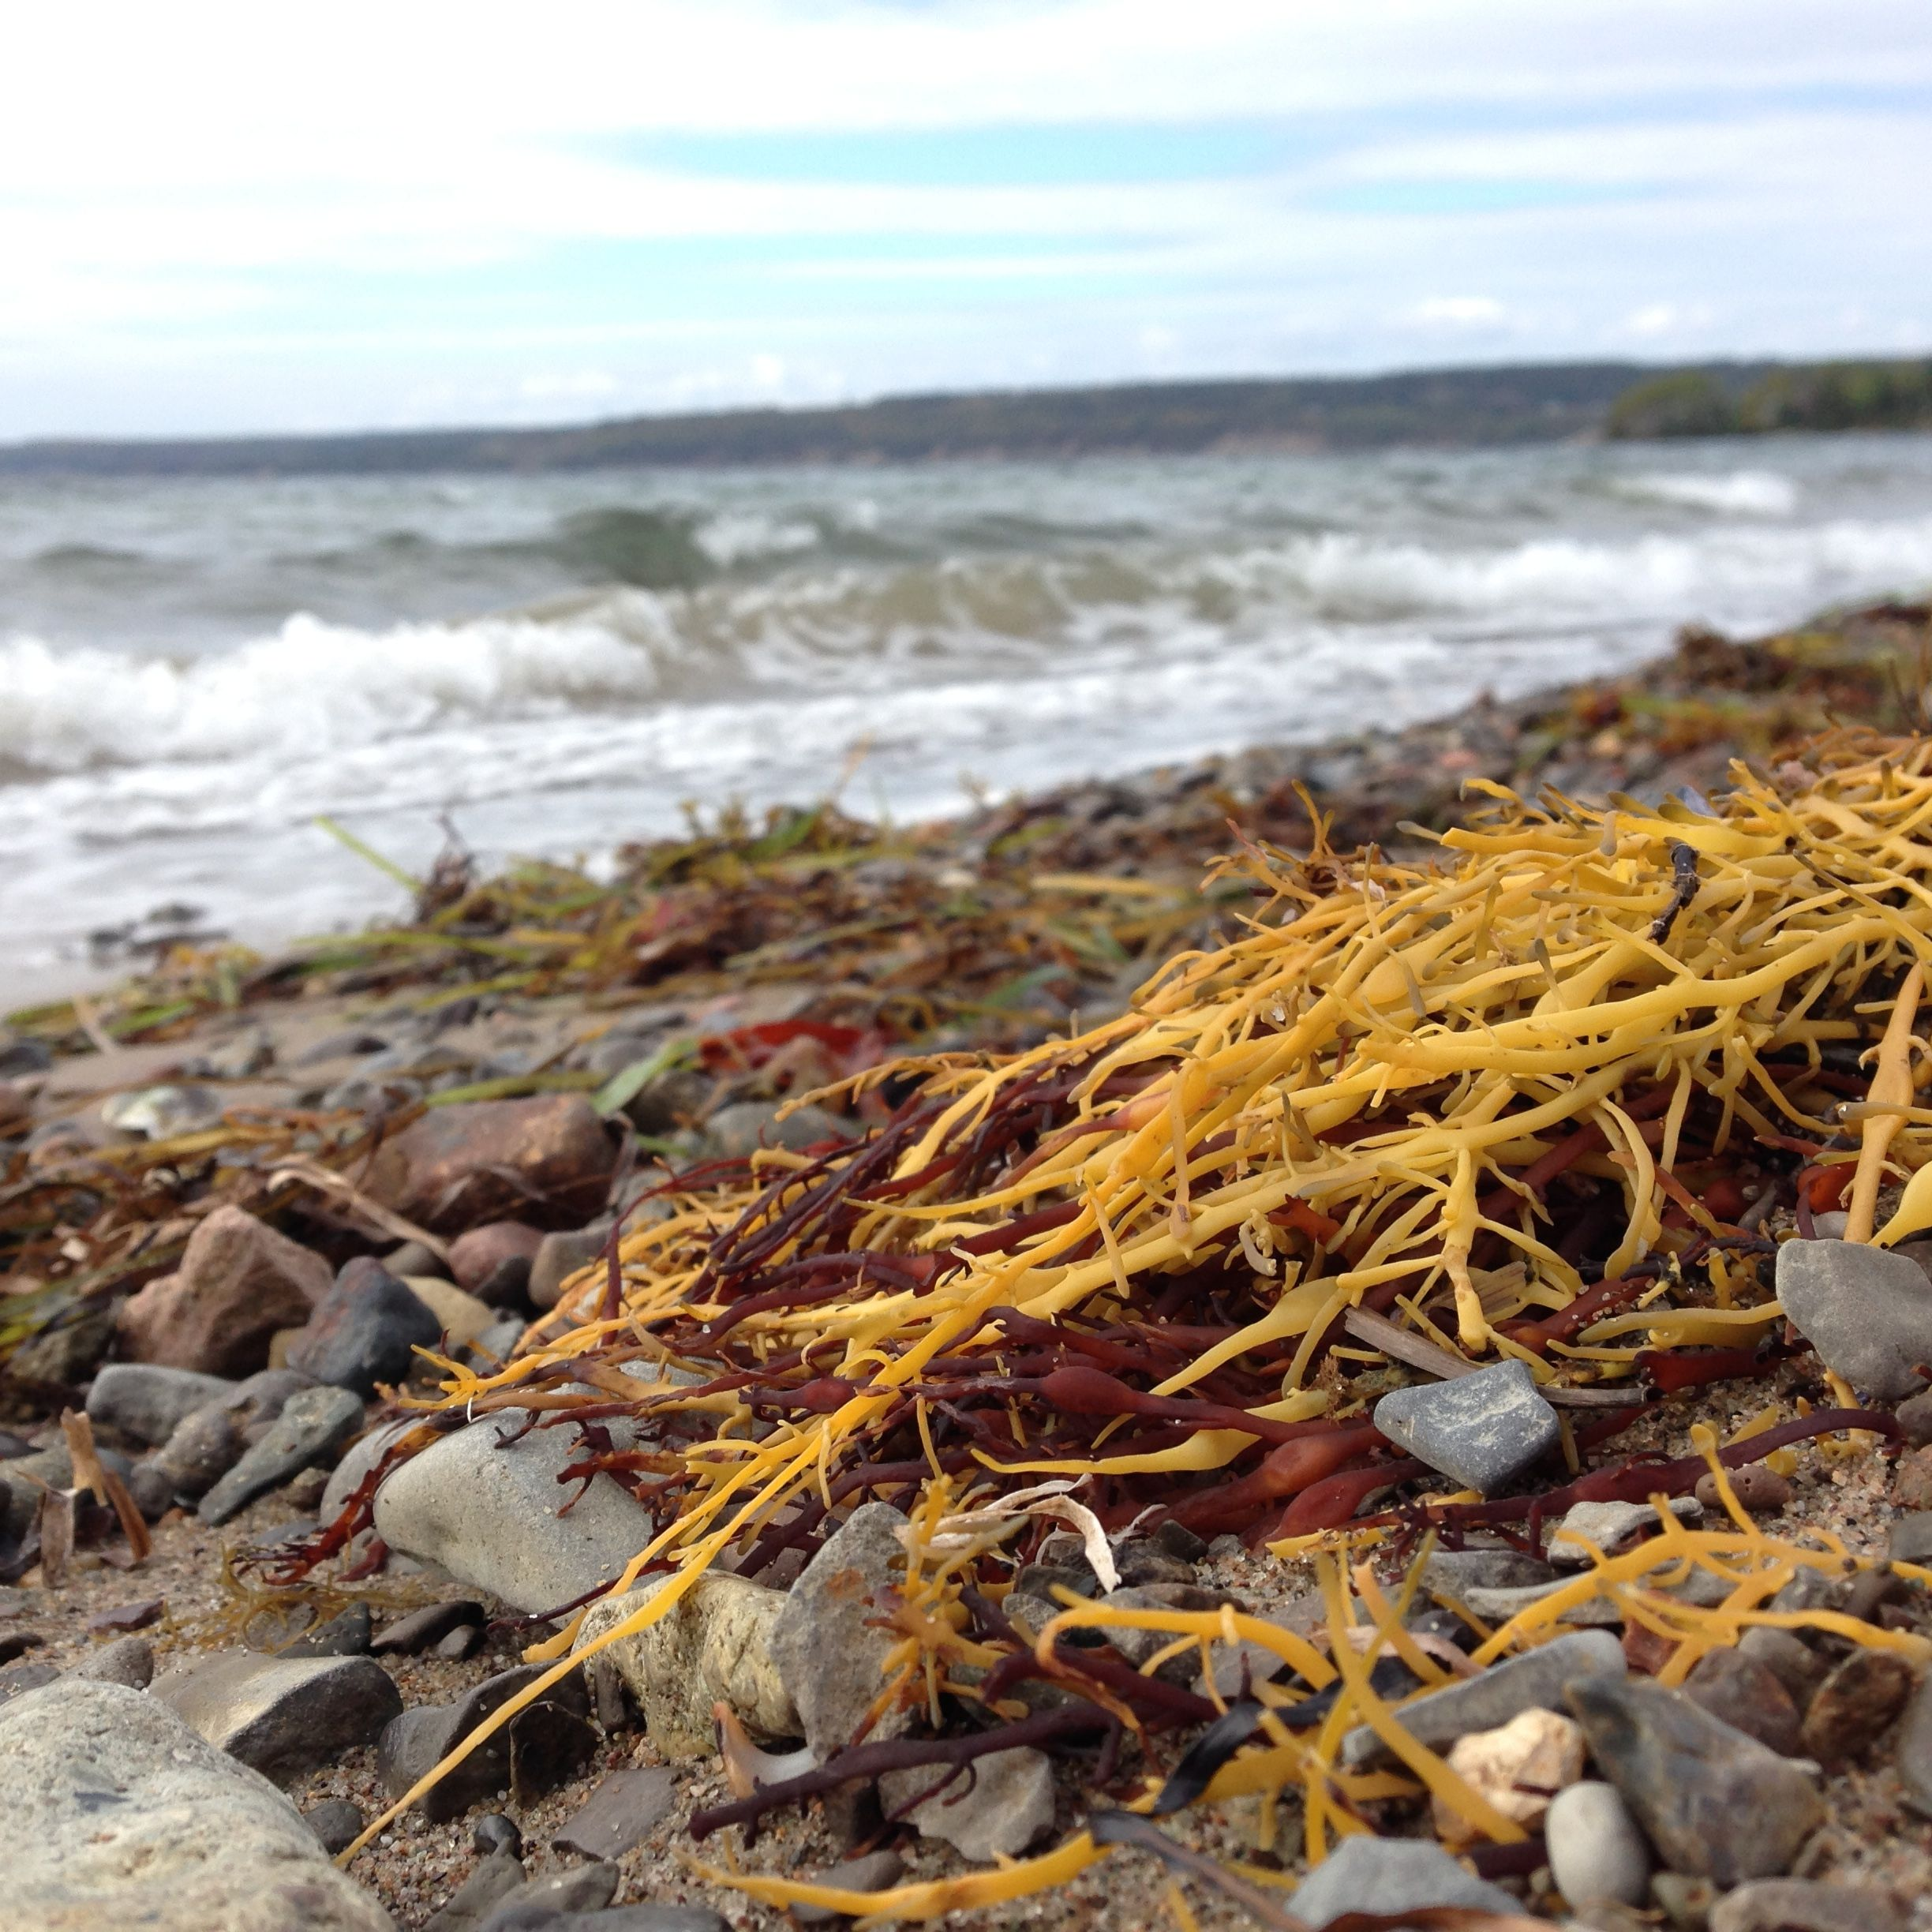 This is at Groves Point, collecting seaweed for my garden, a few weeks ago.